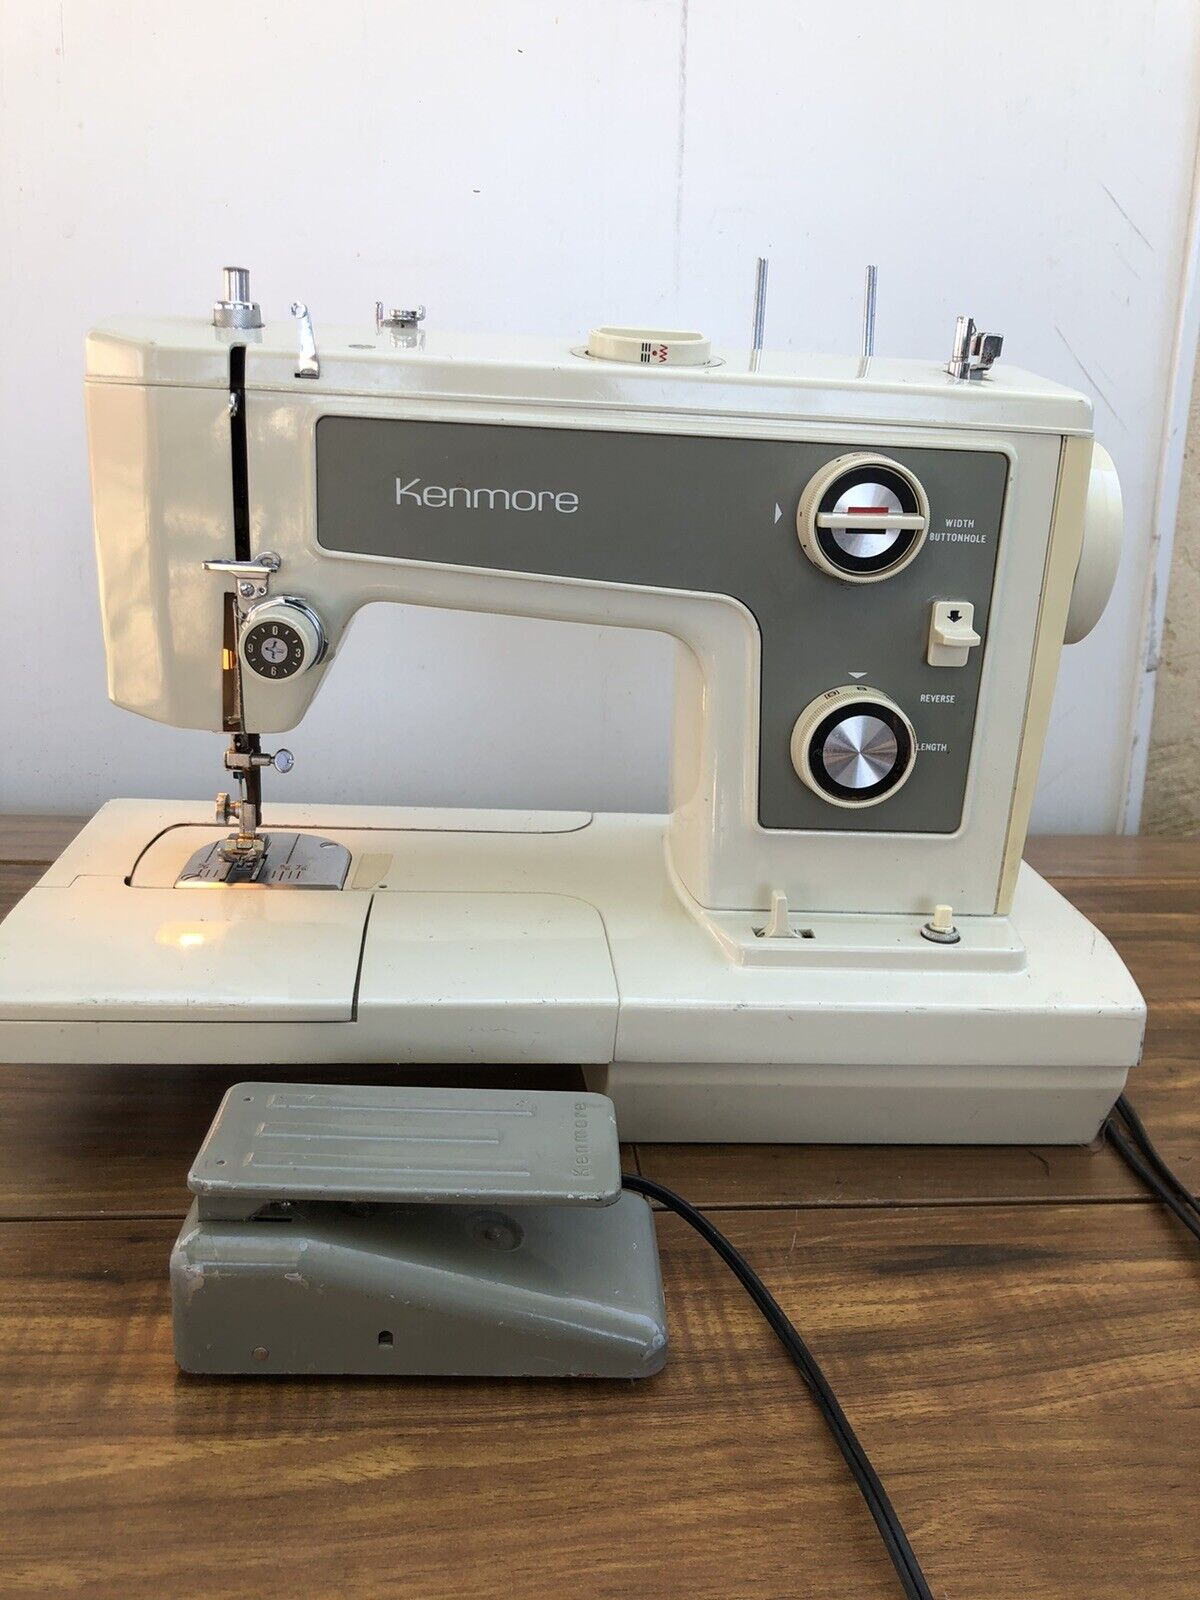 Vintage Sears Kenmore Sewing Machine : vintage, sears, kenmore, sewing, machine, Vintage, Sears, Kenmore, Sewing, Machine, Model, 148.19370, Excellent, Condition, Online